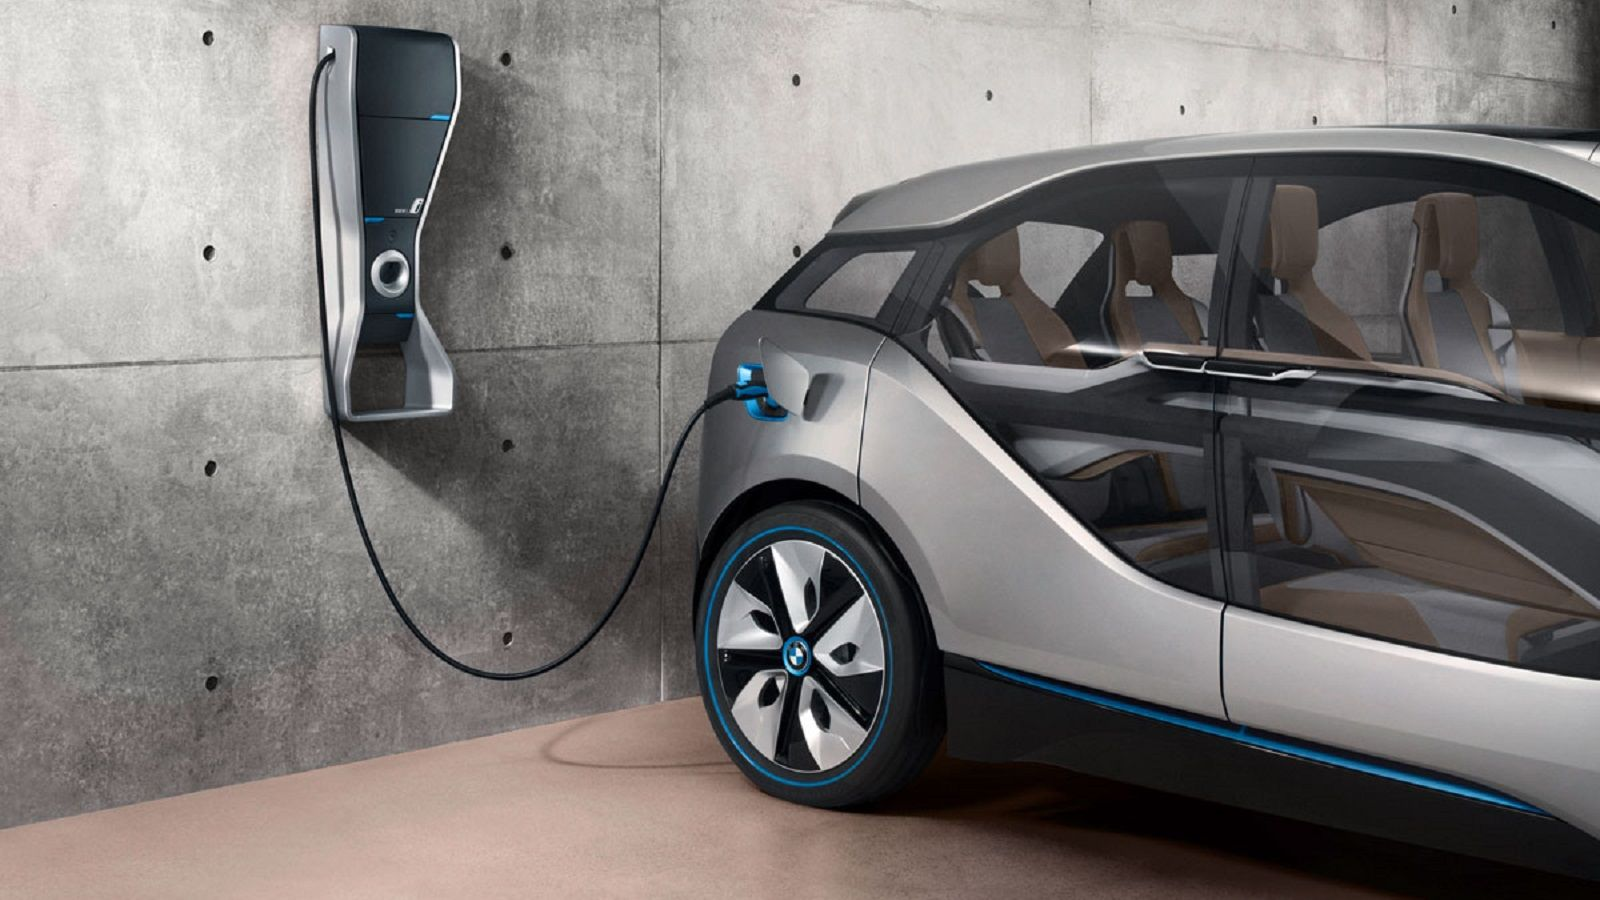 Mark ruffalo with his bmw i3 celebrities who drive electric pinterest bmw i3 and bmw